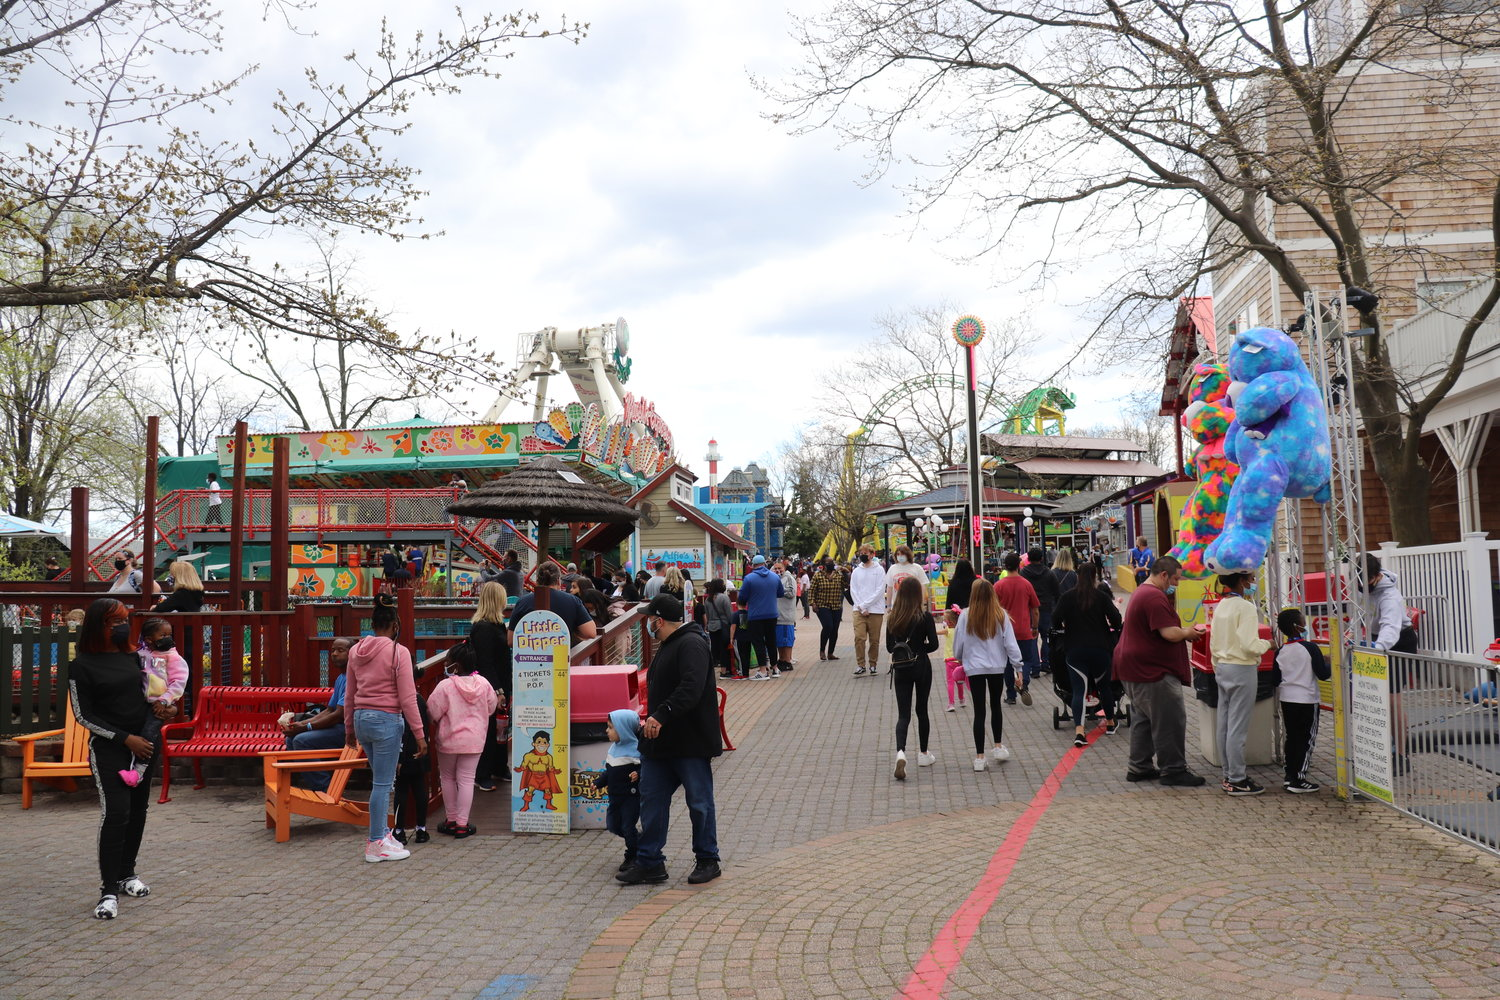 Adventureland, in East Farmingdale, was bustling with families last Friday, a week after it reopened.